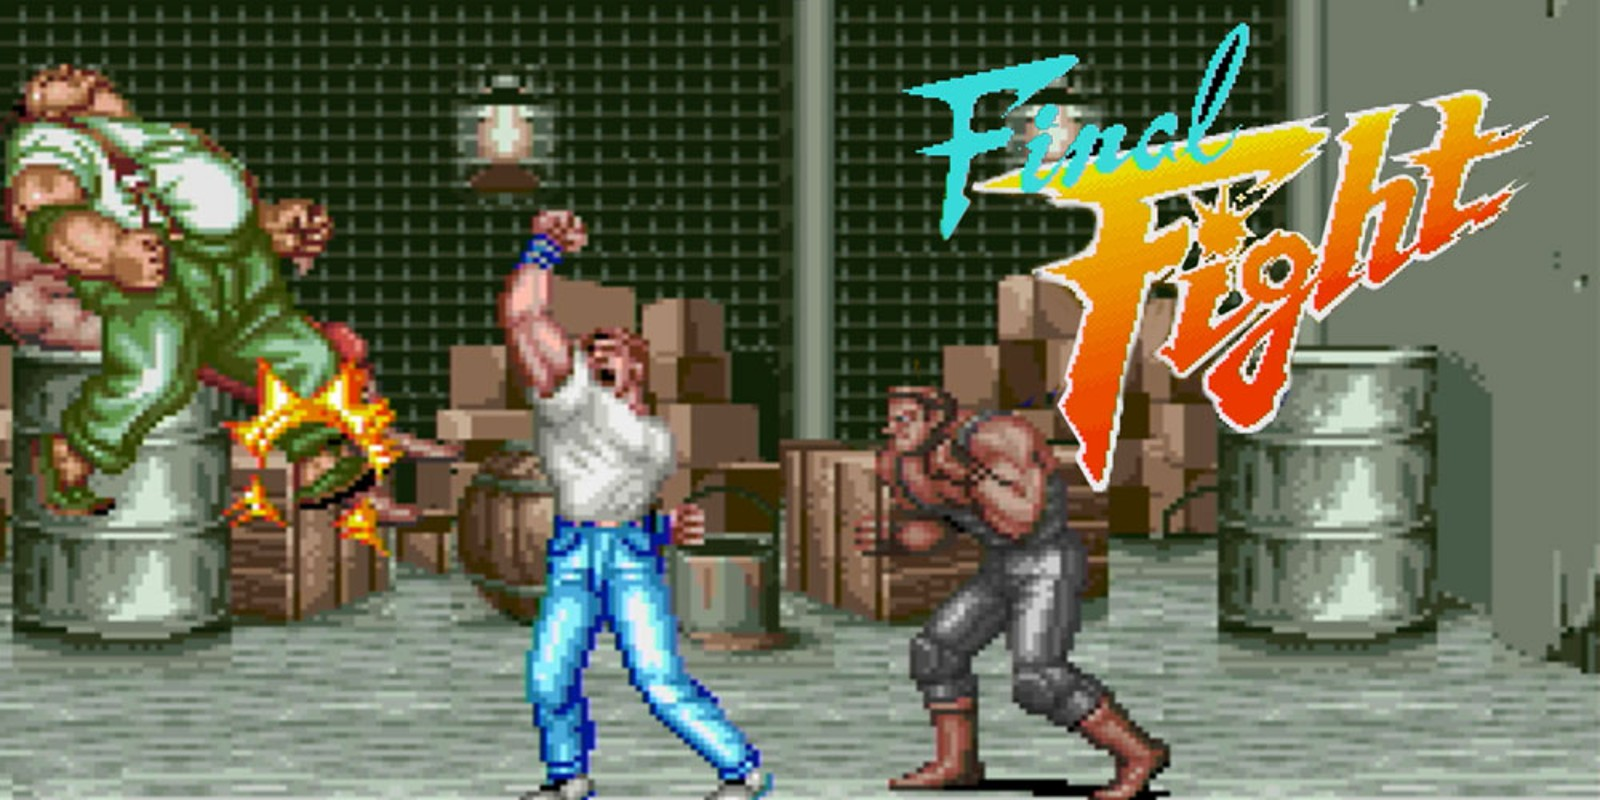 [Análise Retro Game] - Final Fight - Arcade/SNES/PC/SEGA CD SI_WiiUVC_FinalFight_image1600w